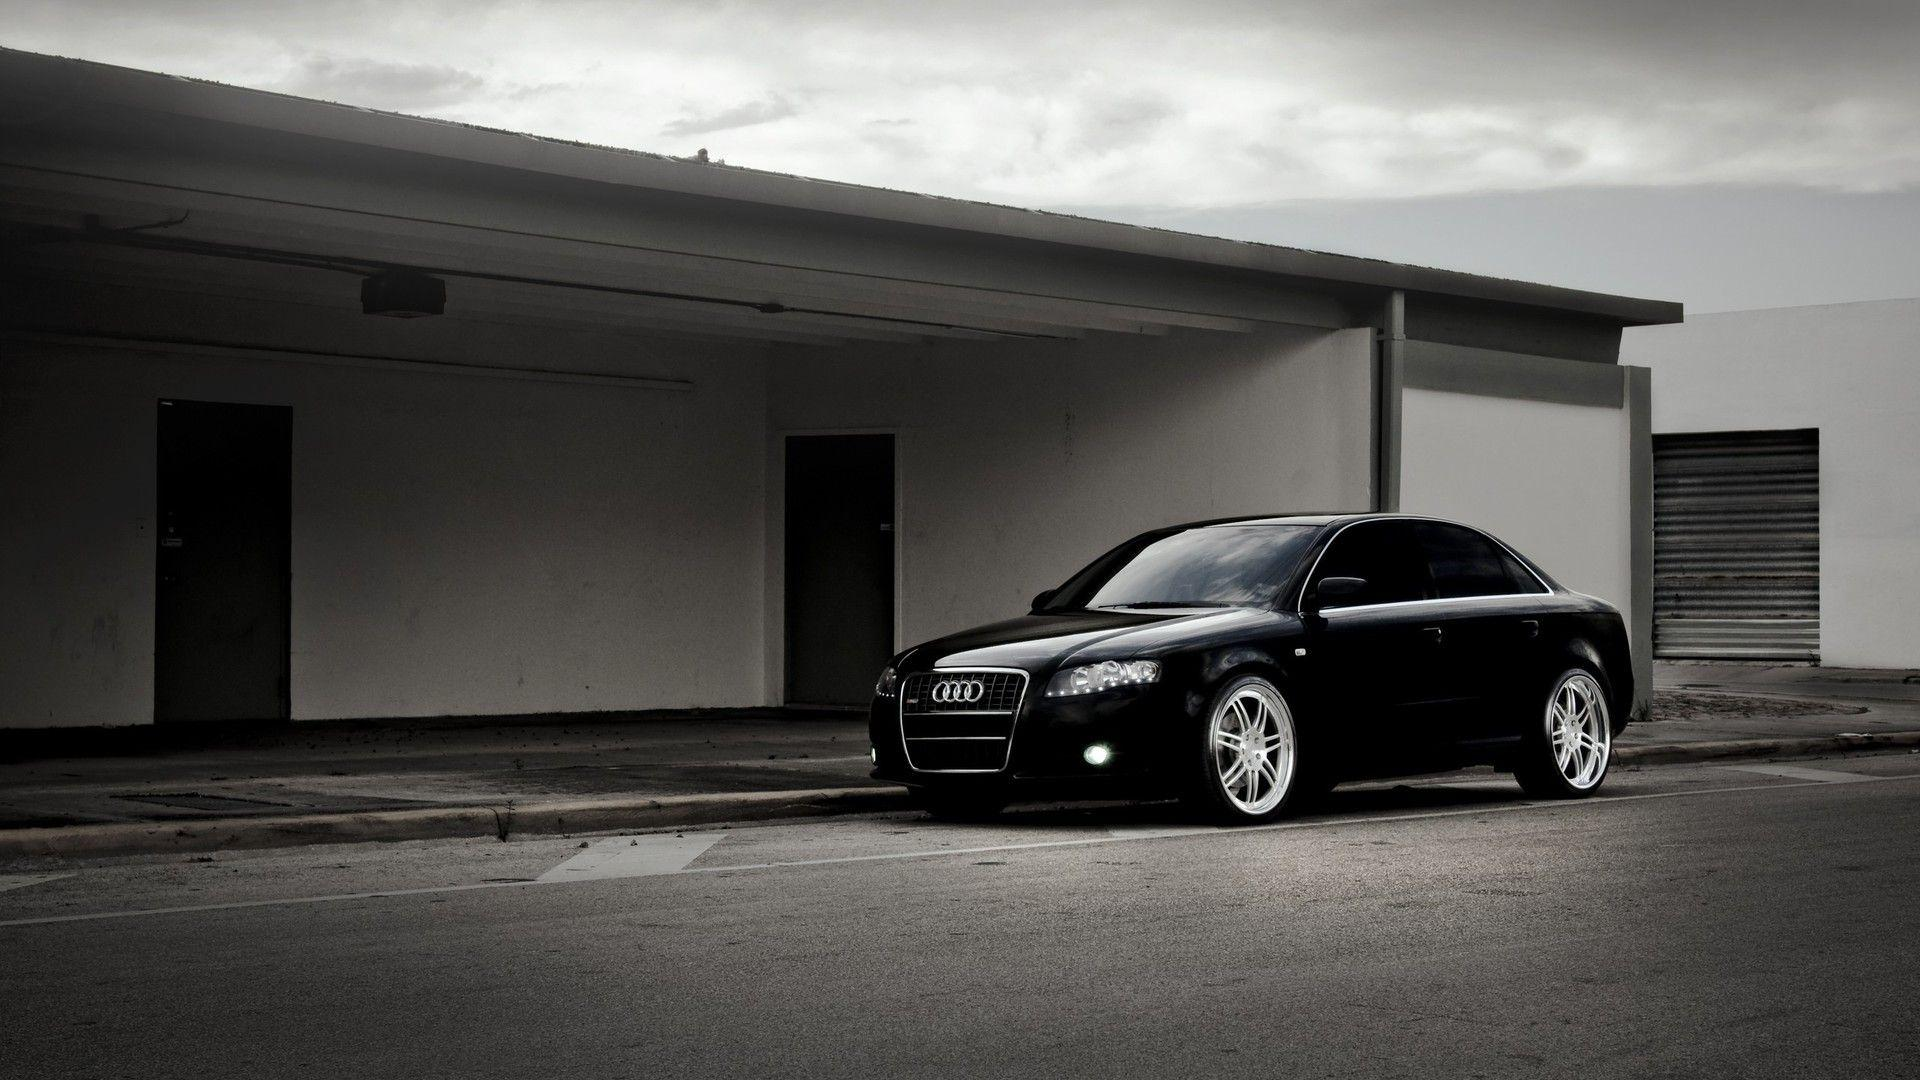 Audi A4 Wallpapers, Amazing 4K Ultra HD Audi A4 Pictures